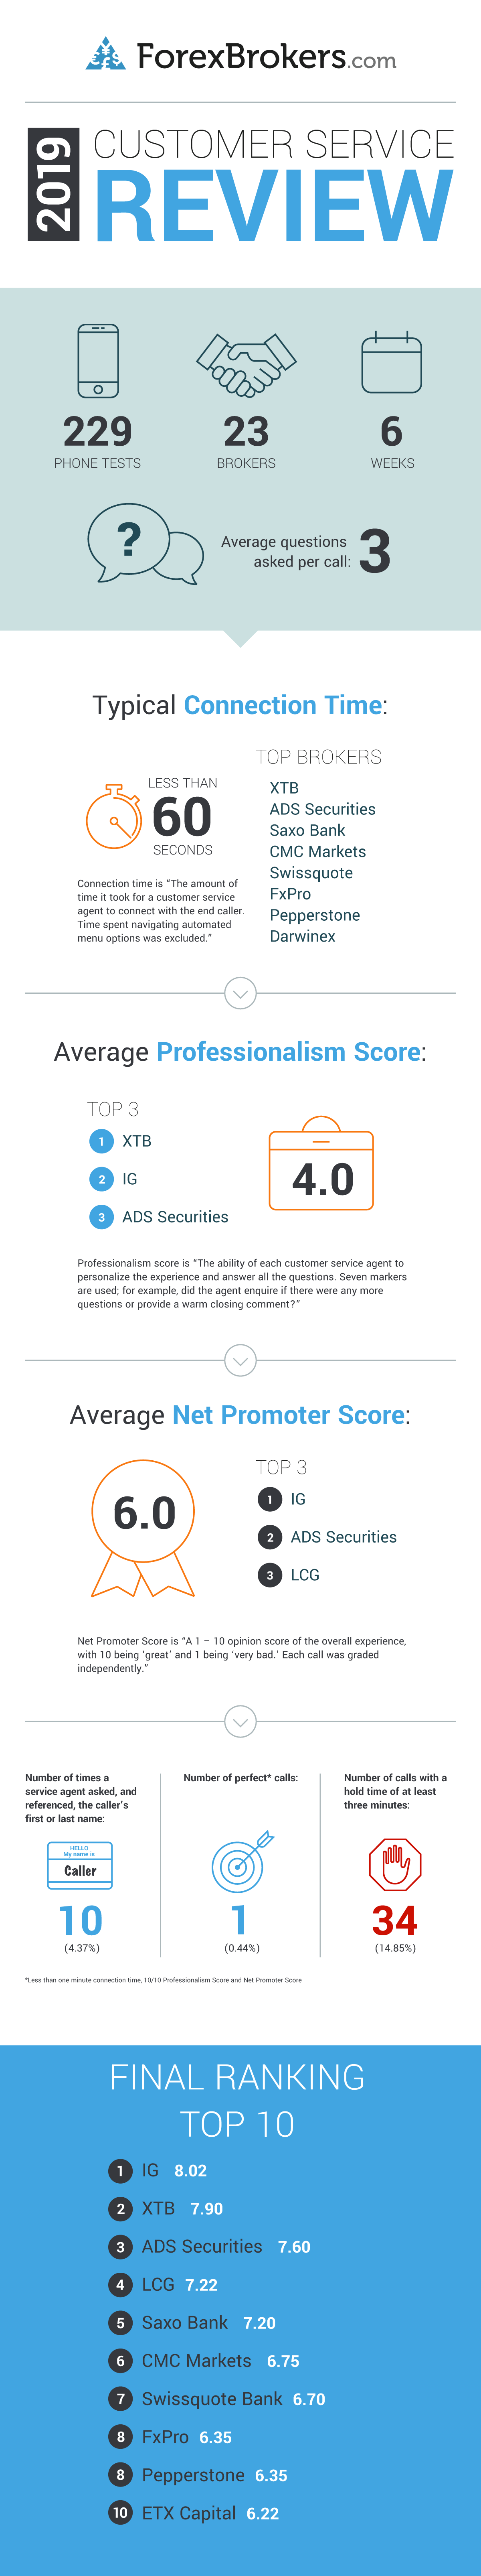 2019 online brokers customer service infographic